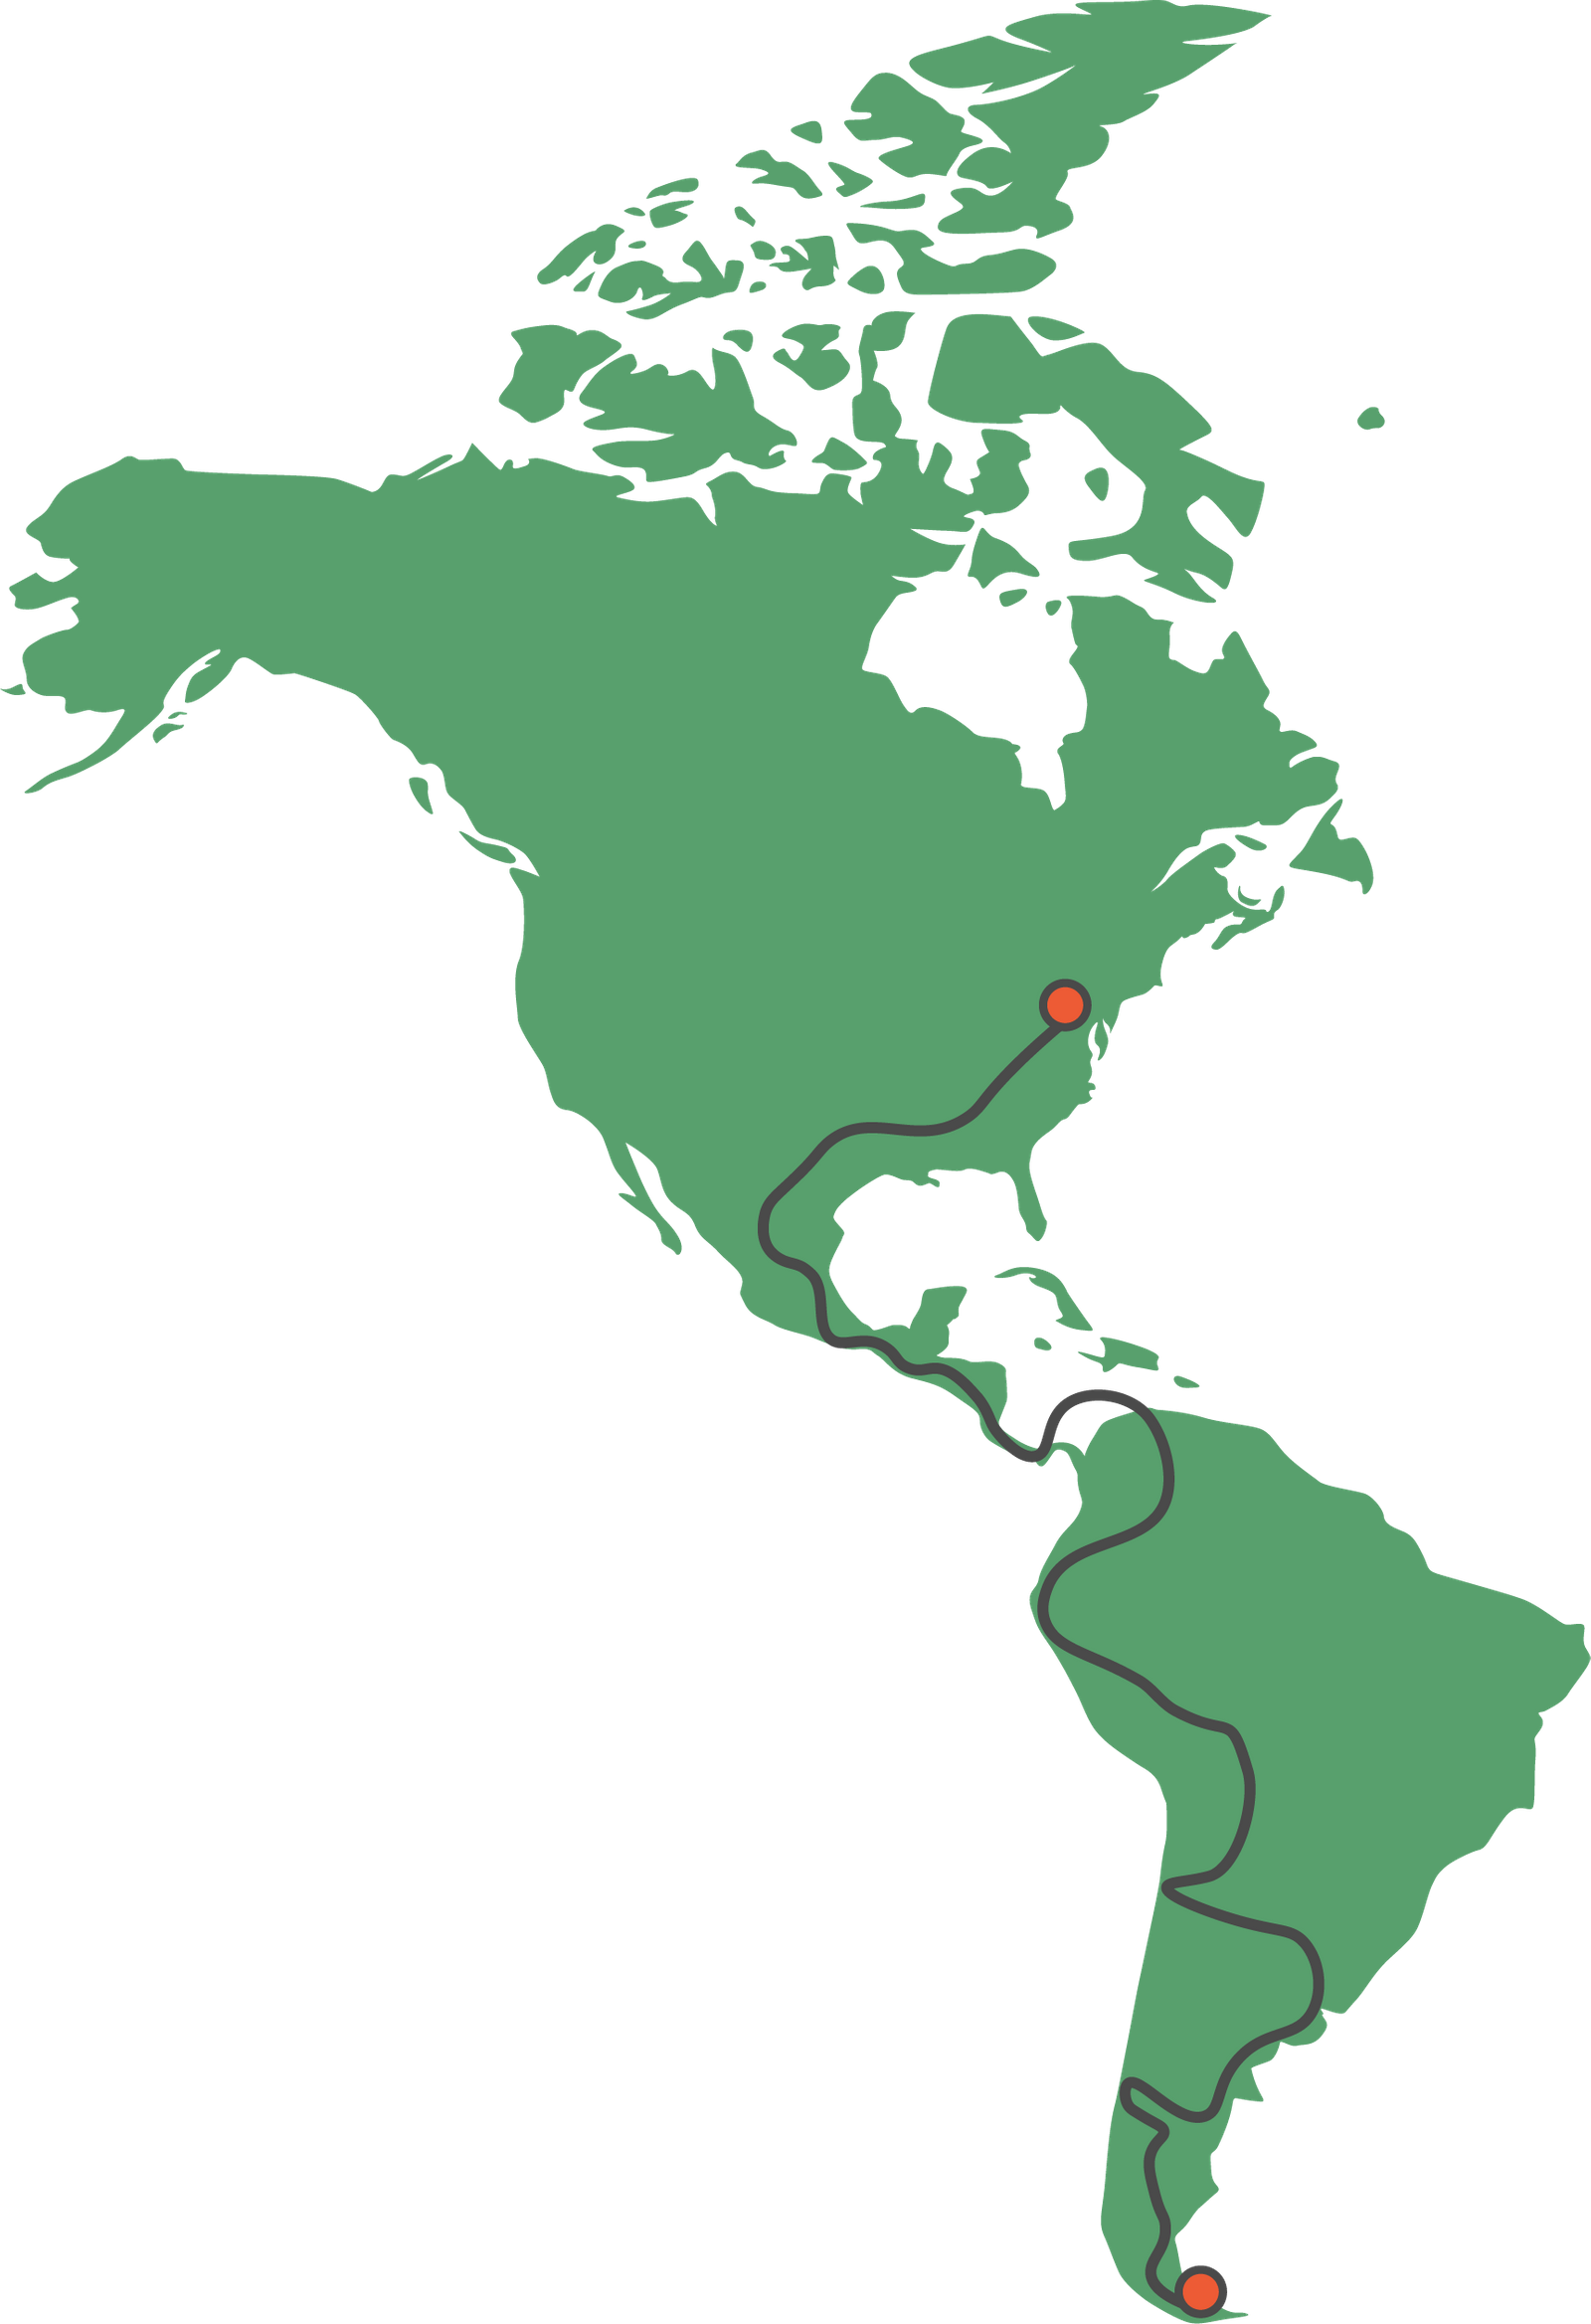 Pan-American Highway Map